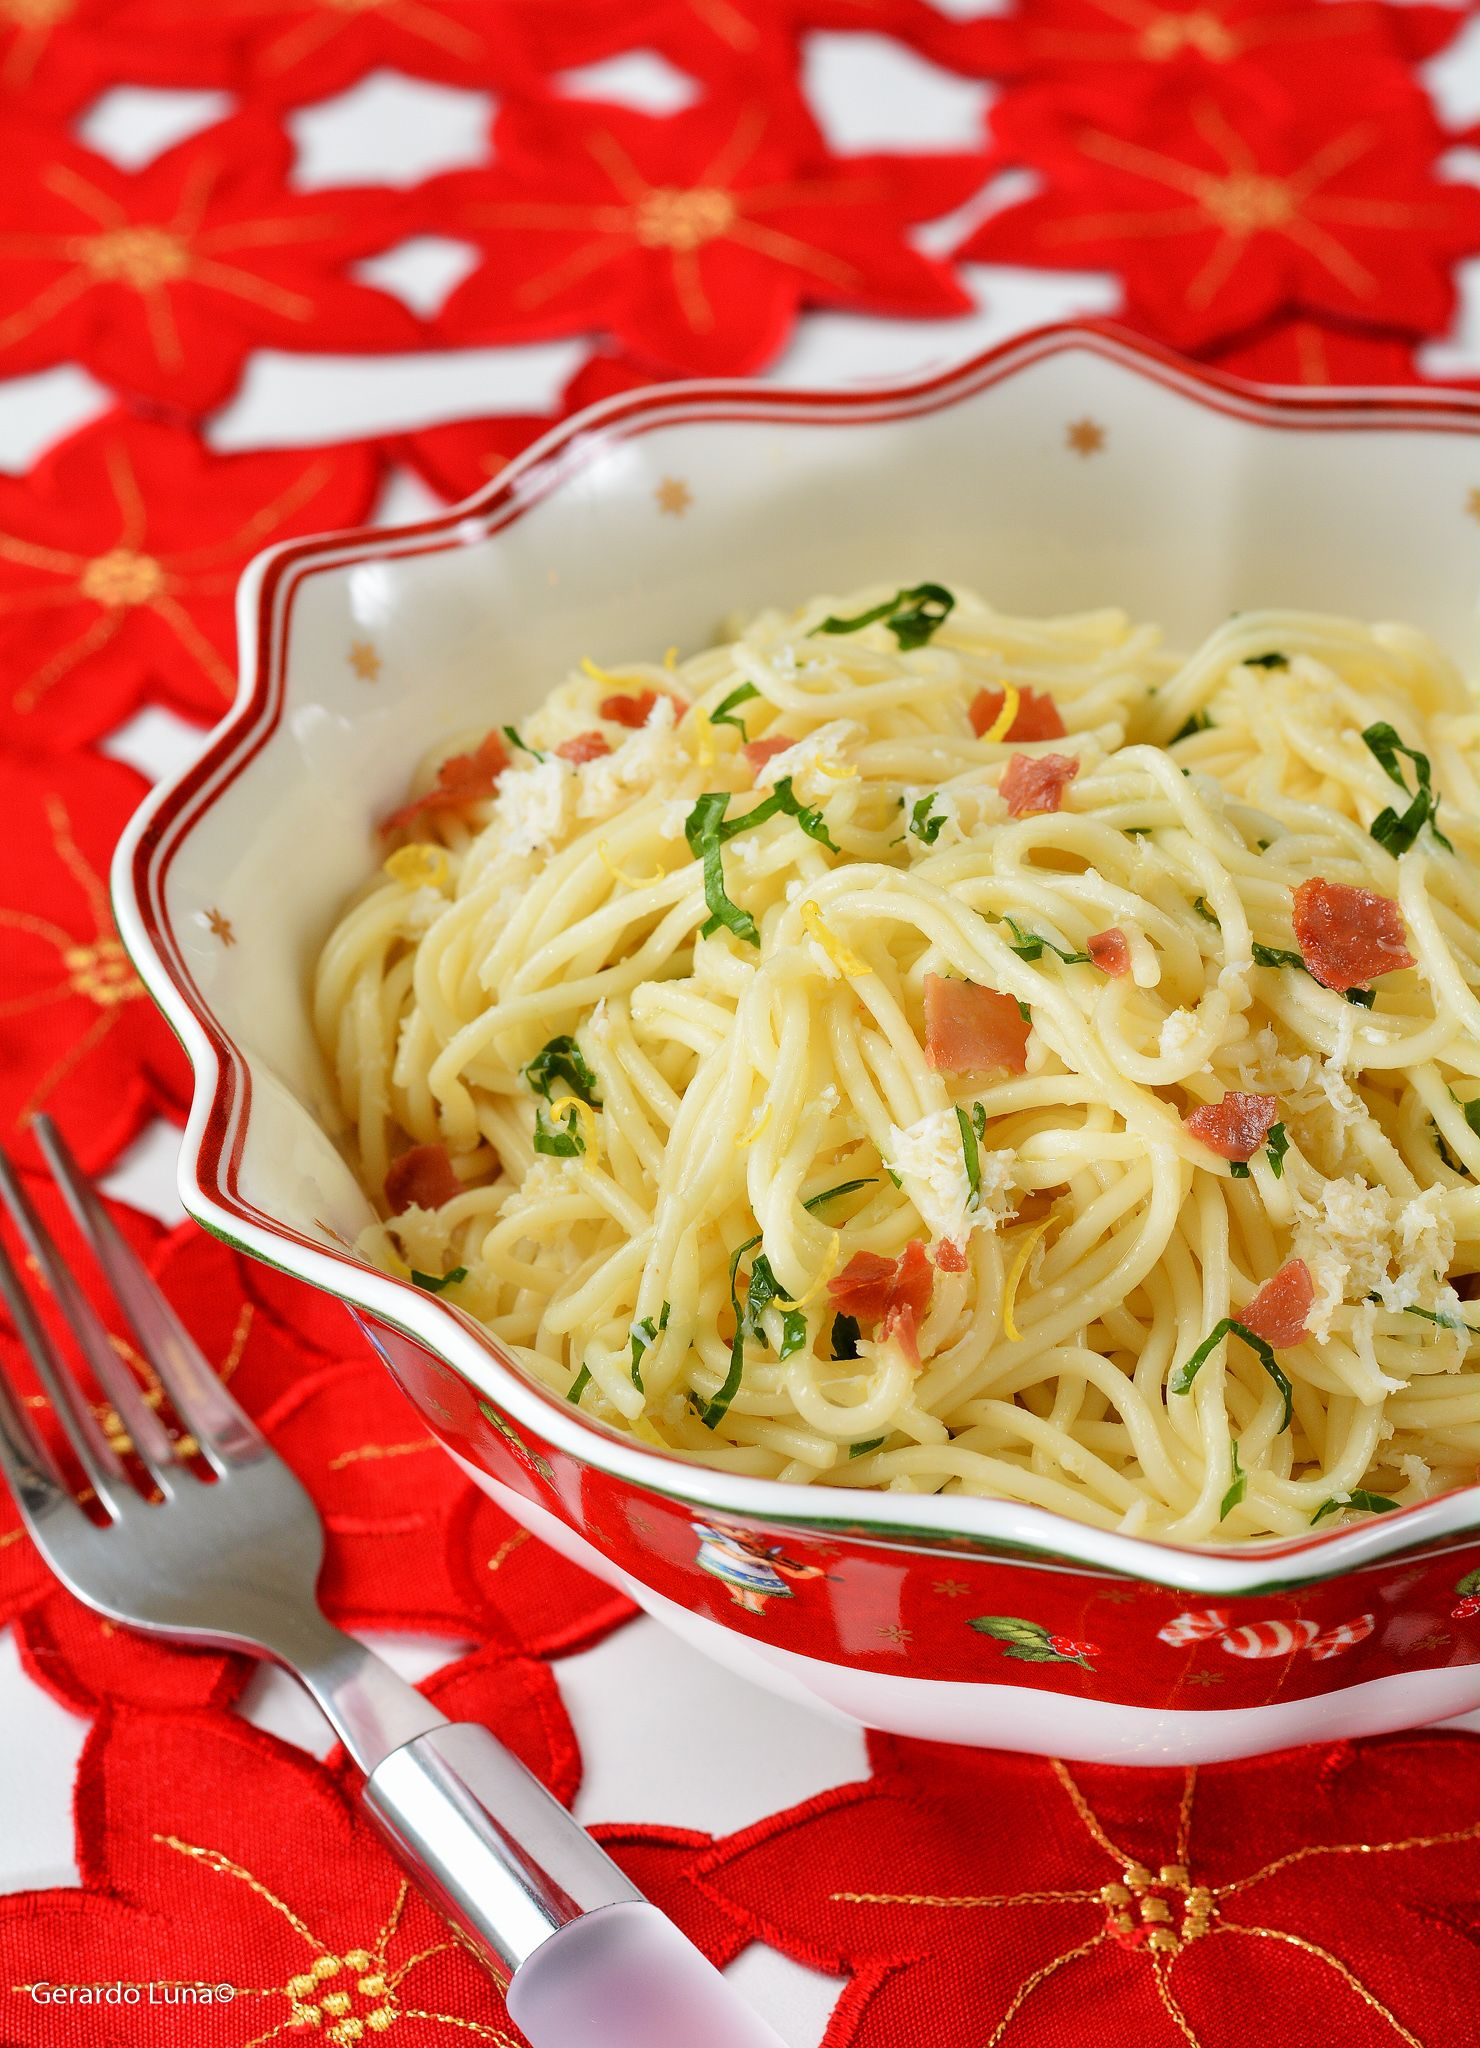 angel hair pasta with crab spicy white wine sauce and pancetta with images white wine on hebbar s kitchen white sauce pasta id=69585